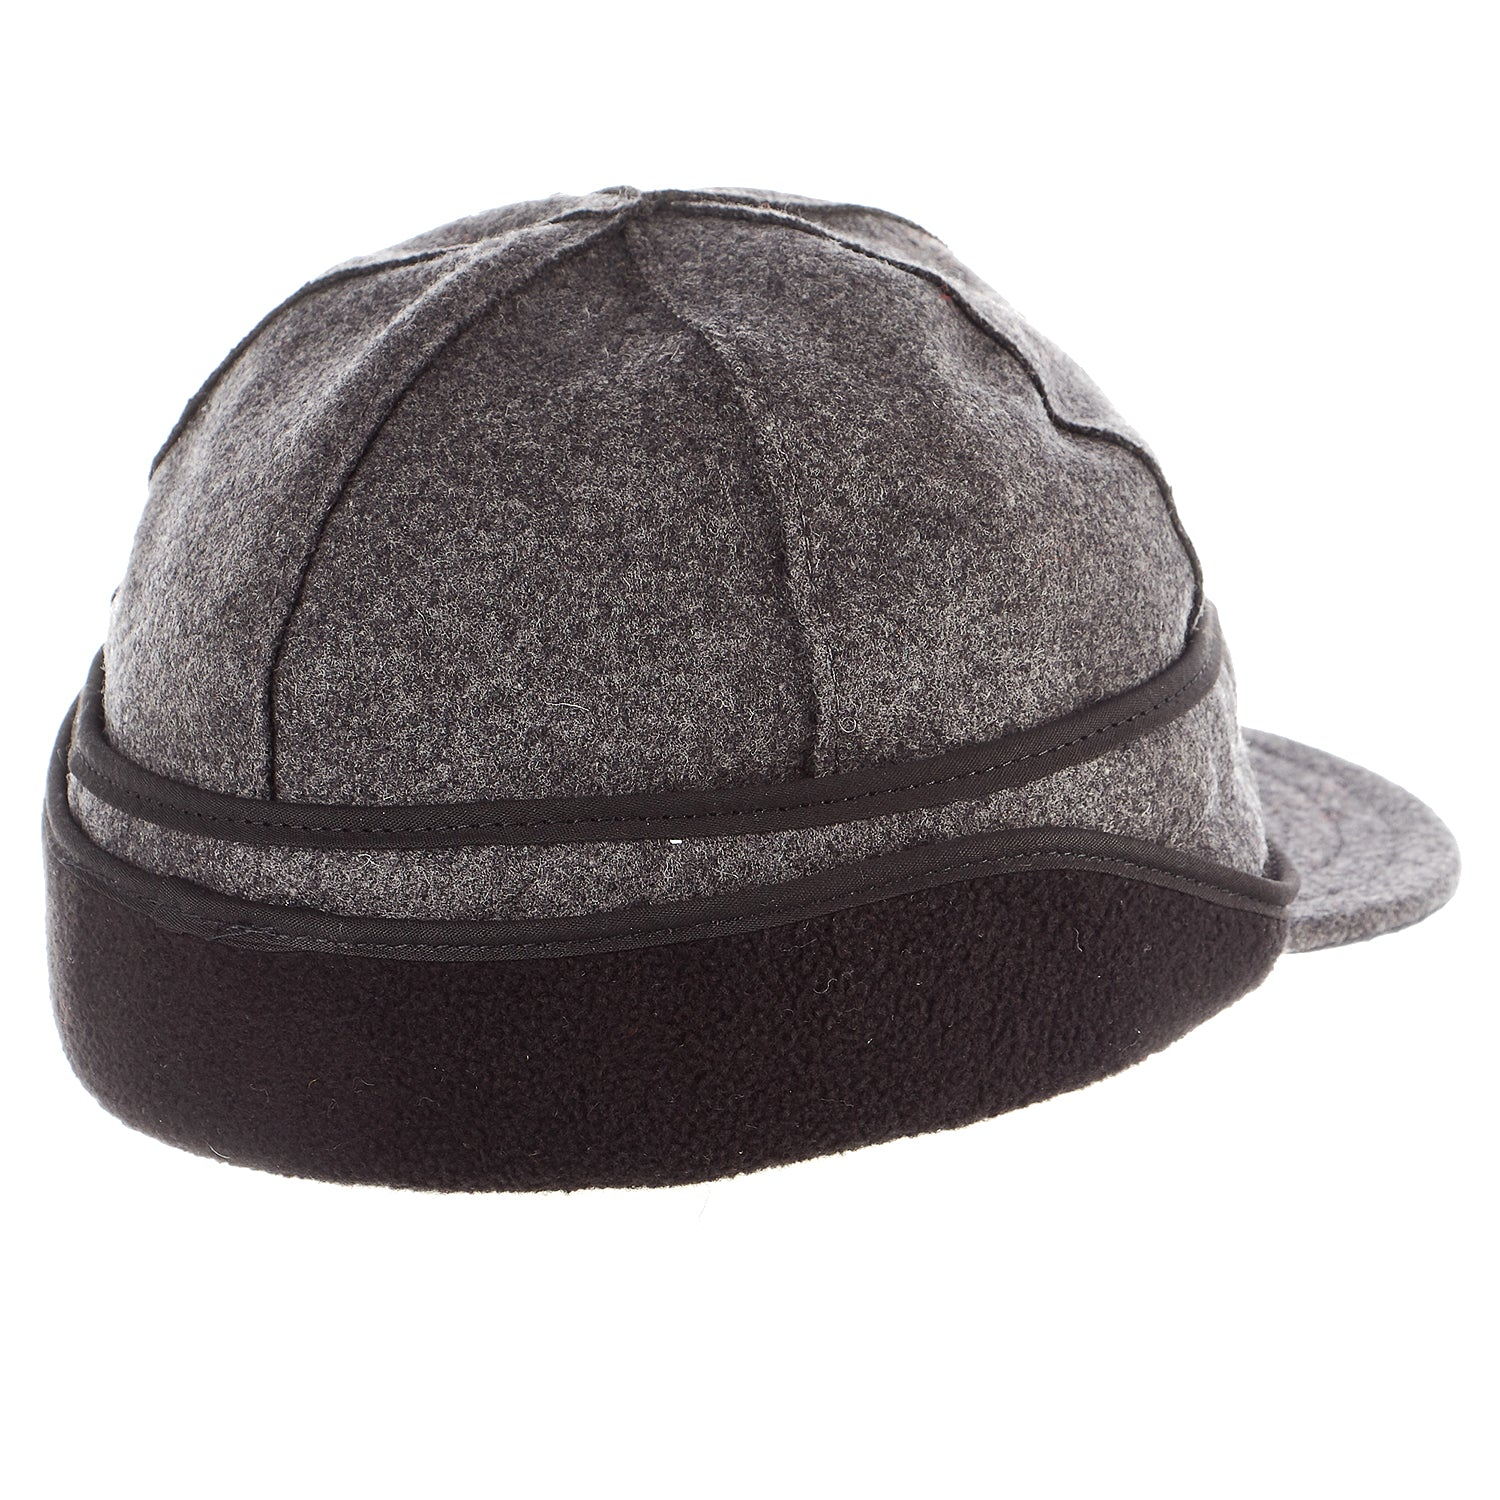 9fb0796a Stormy Kromer The Rancher Cap - Men's - Shoplifestyle